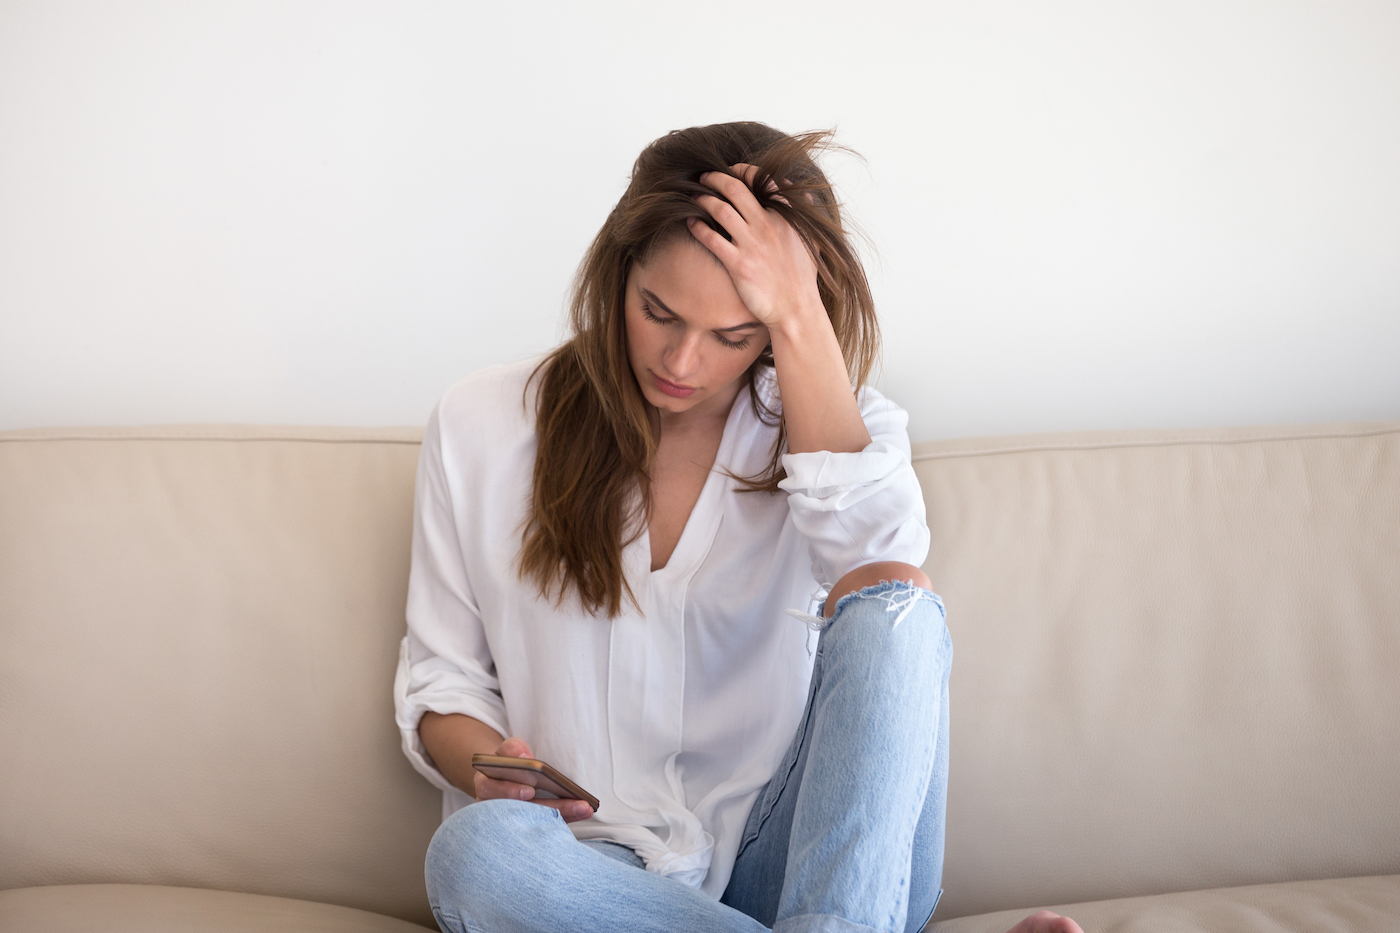 Thumbnail for If Your Anxiety Surrounding COVID-19 Is Higher Than Ever, Science Says There's a Reason